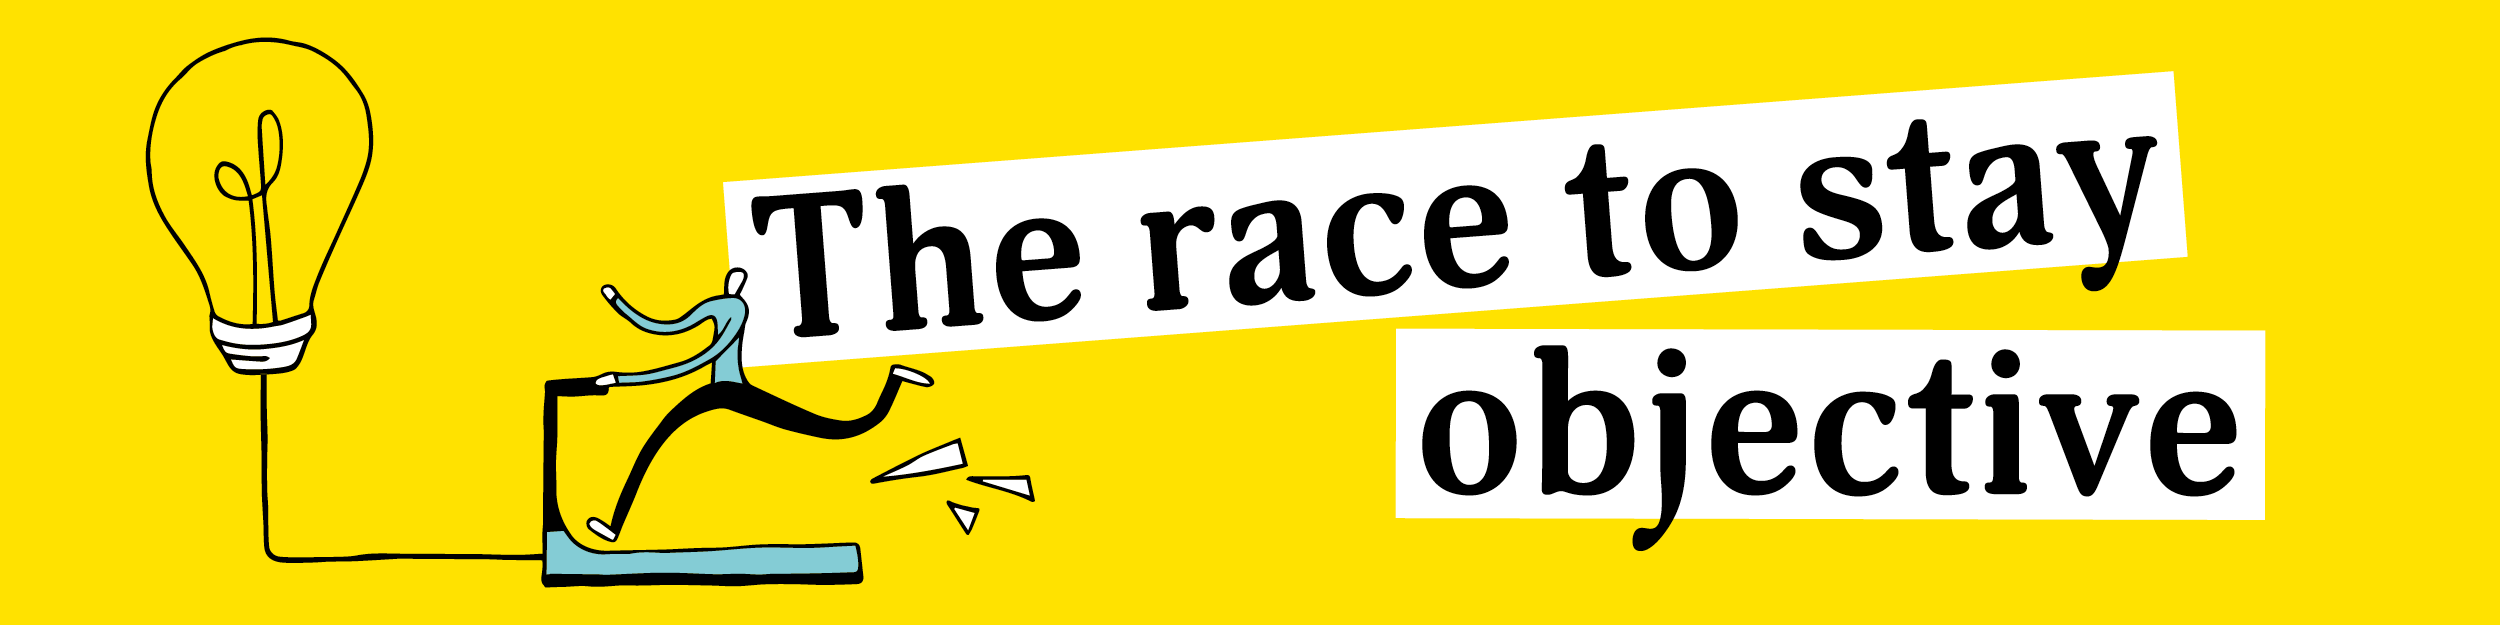 The race to stay objective